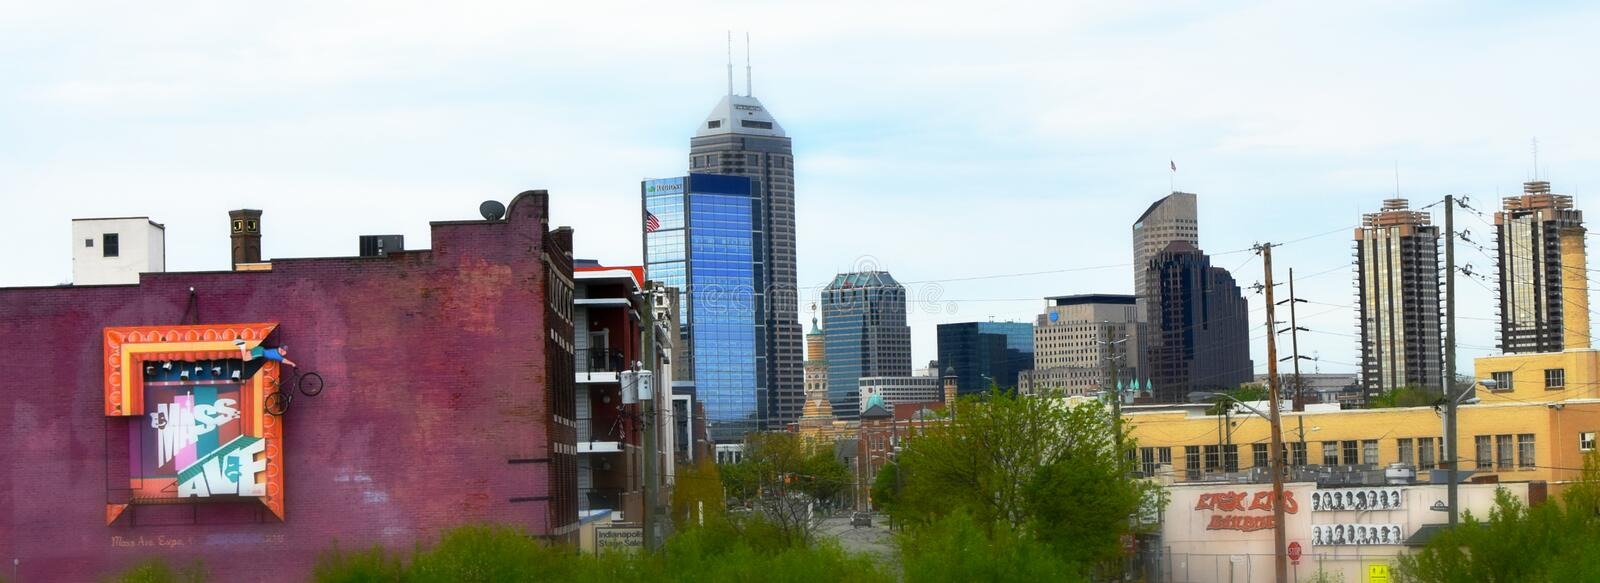 City of Indianapolis, Indiana. The city of Indianapolis, Indiana cityscape with Mass Ave. Sign royalty free stock photography